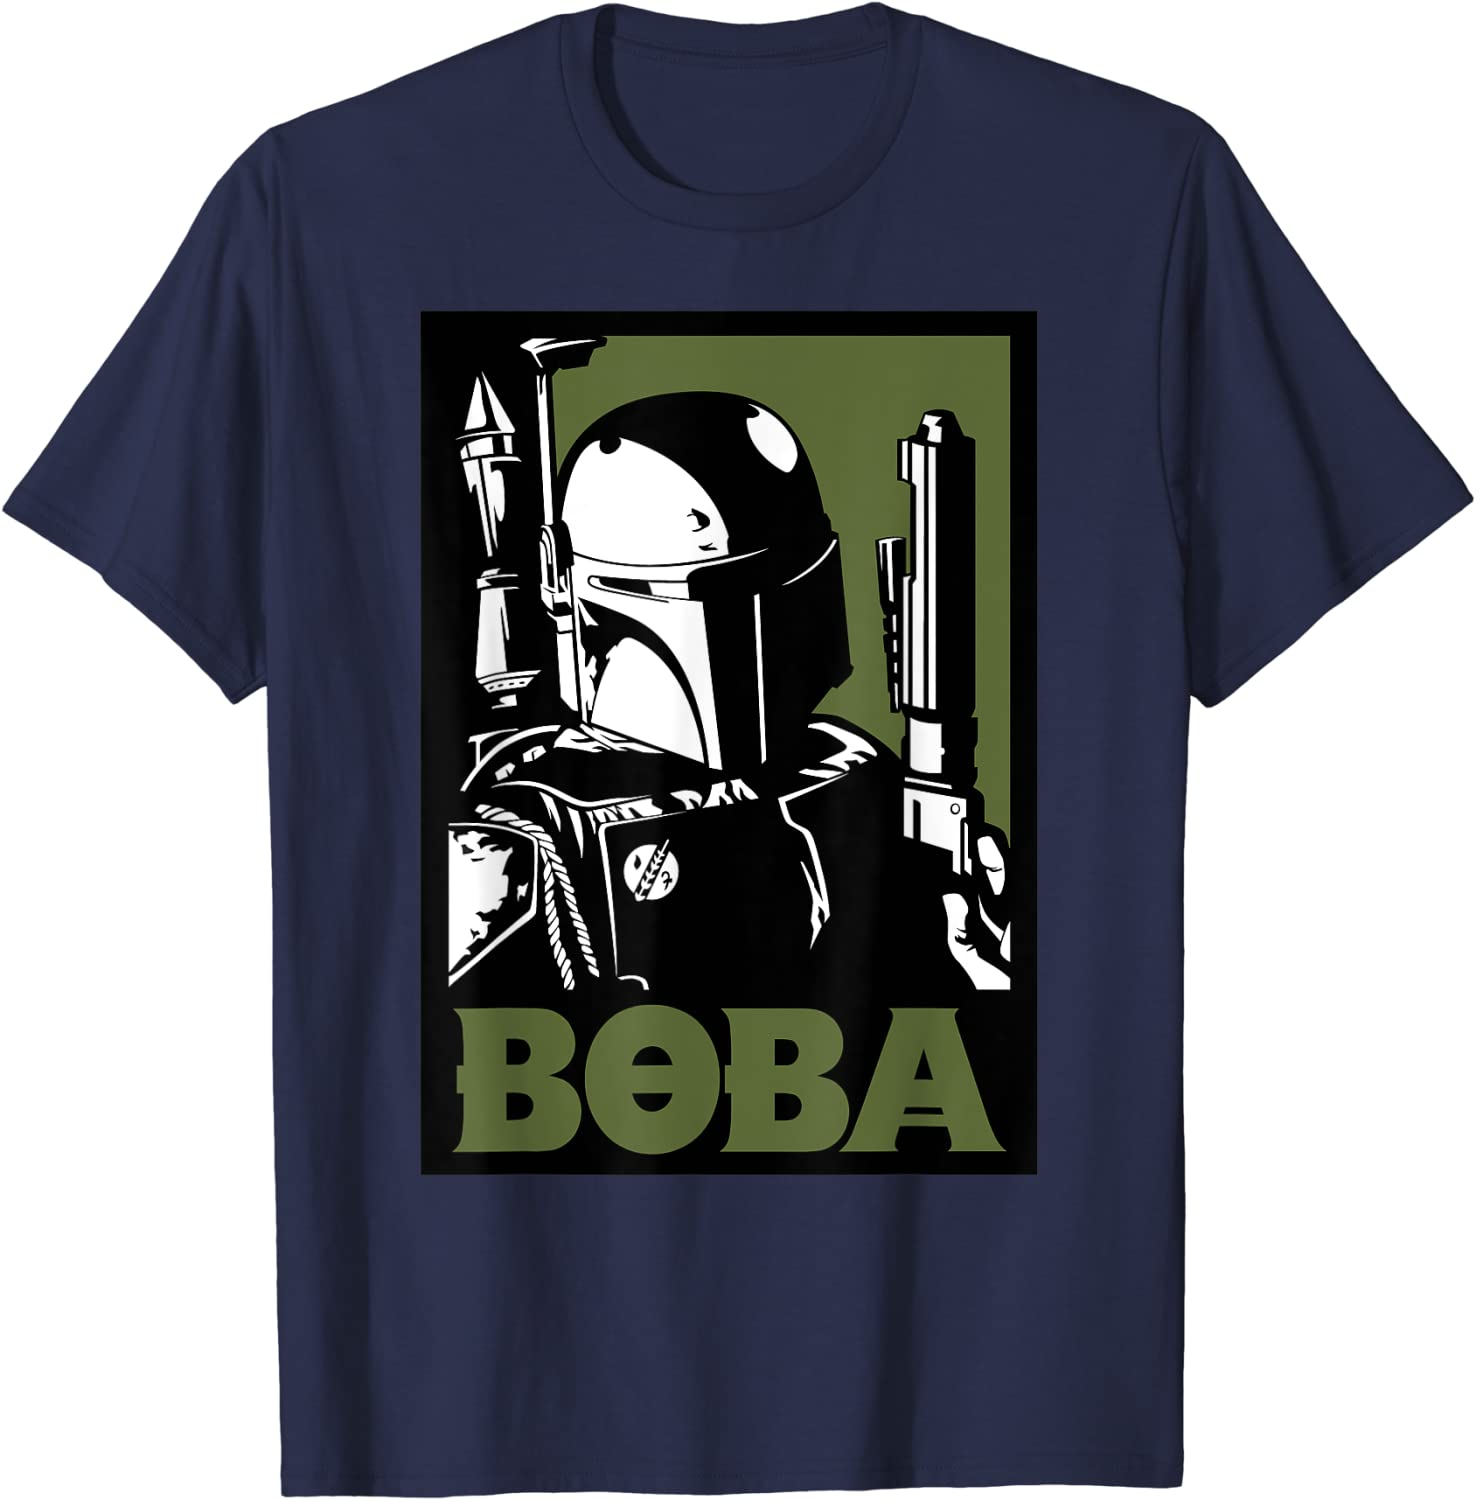 Star Wars Boba Now free shipping Fett Poster T-Shirt Ranking integrated 1st place